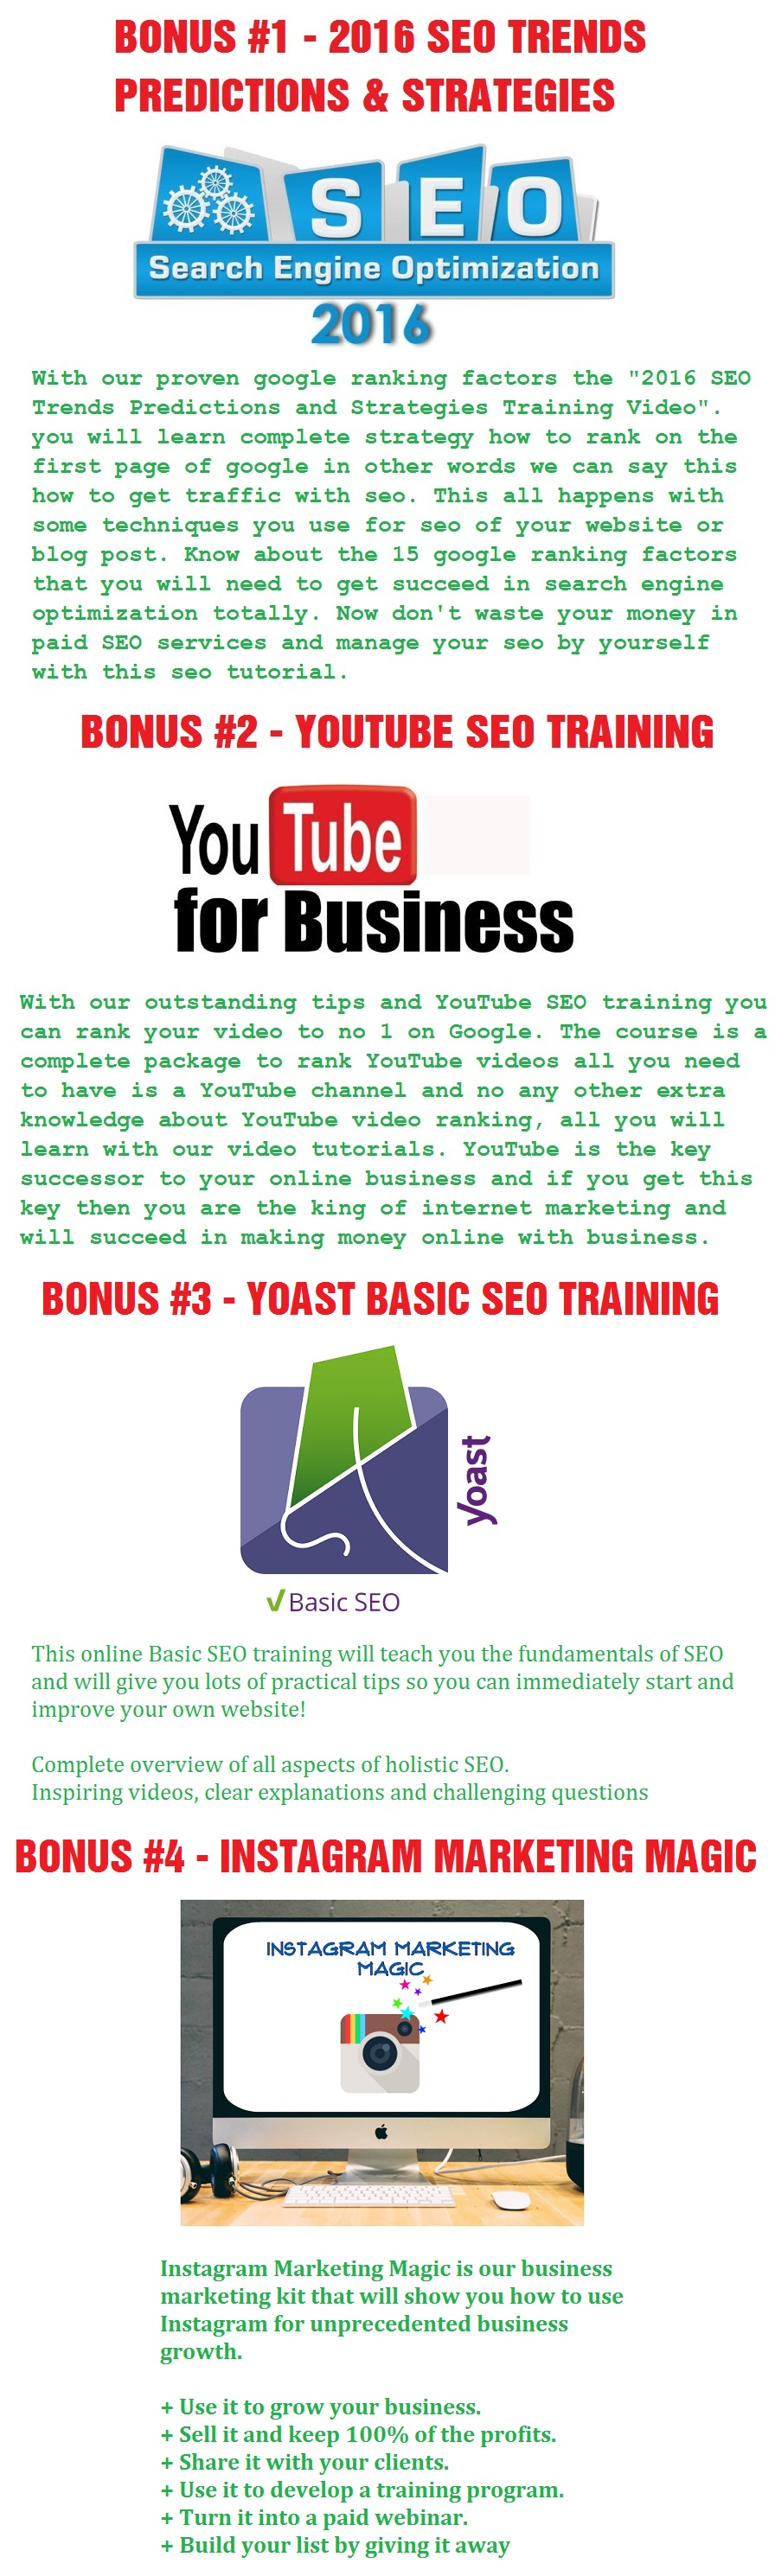 Nimbus SEO Artificially Intelligent Tool Bonus